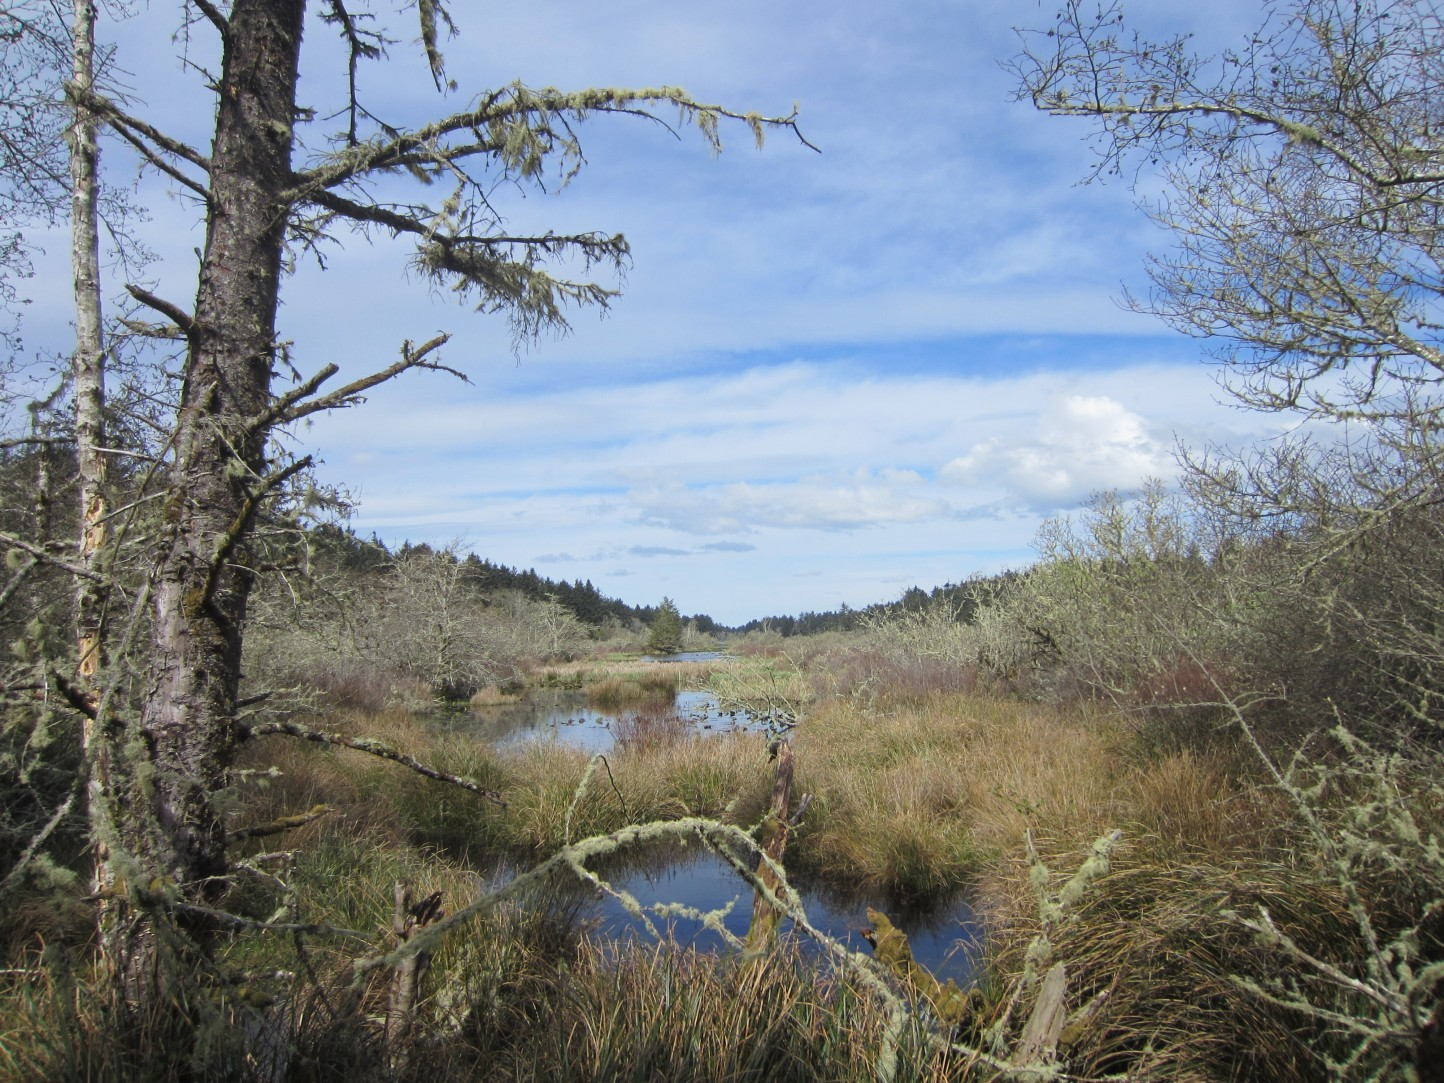 New conservation property near Leadbetter State Park on the Long Beach Peninsula.